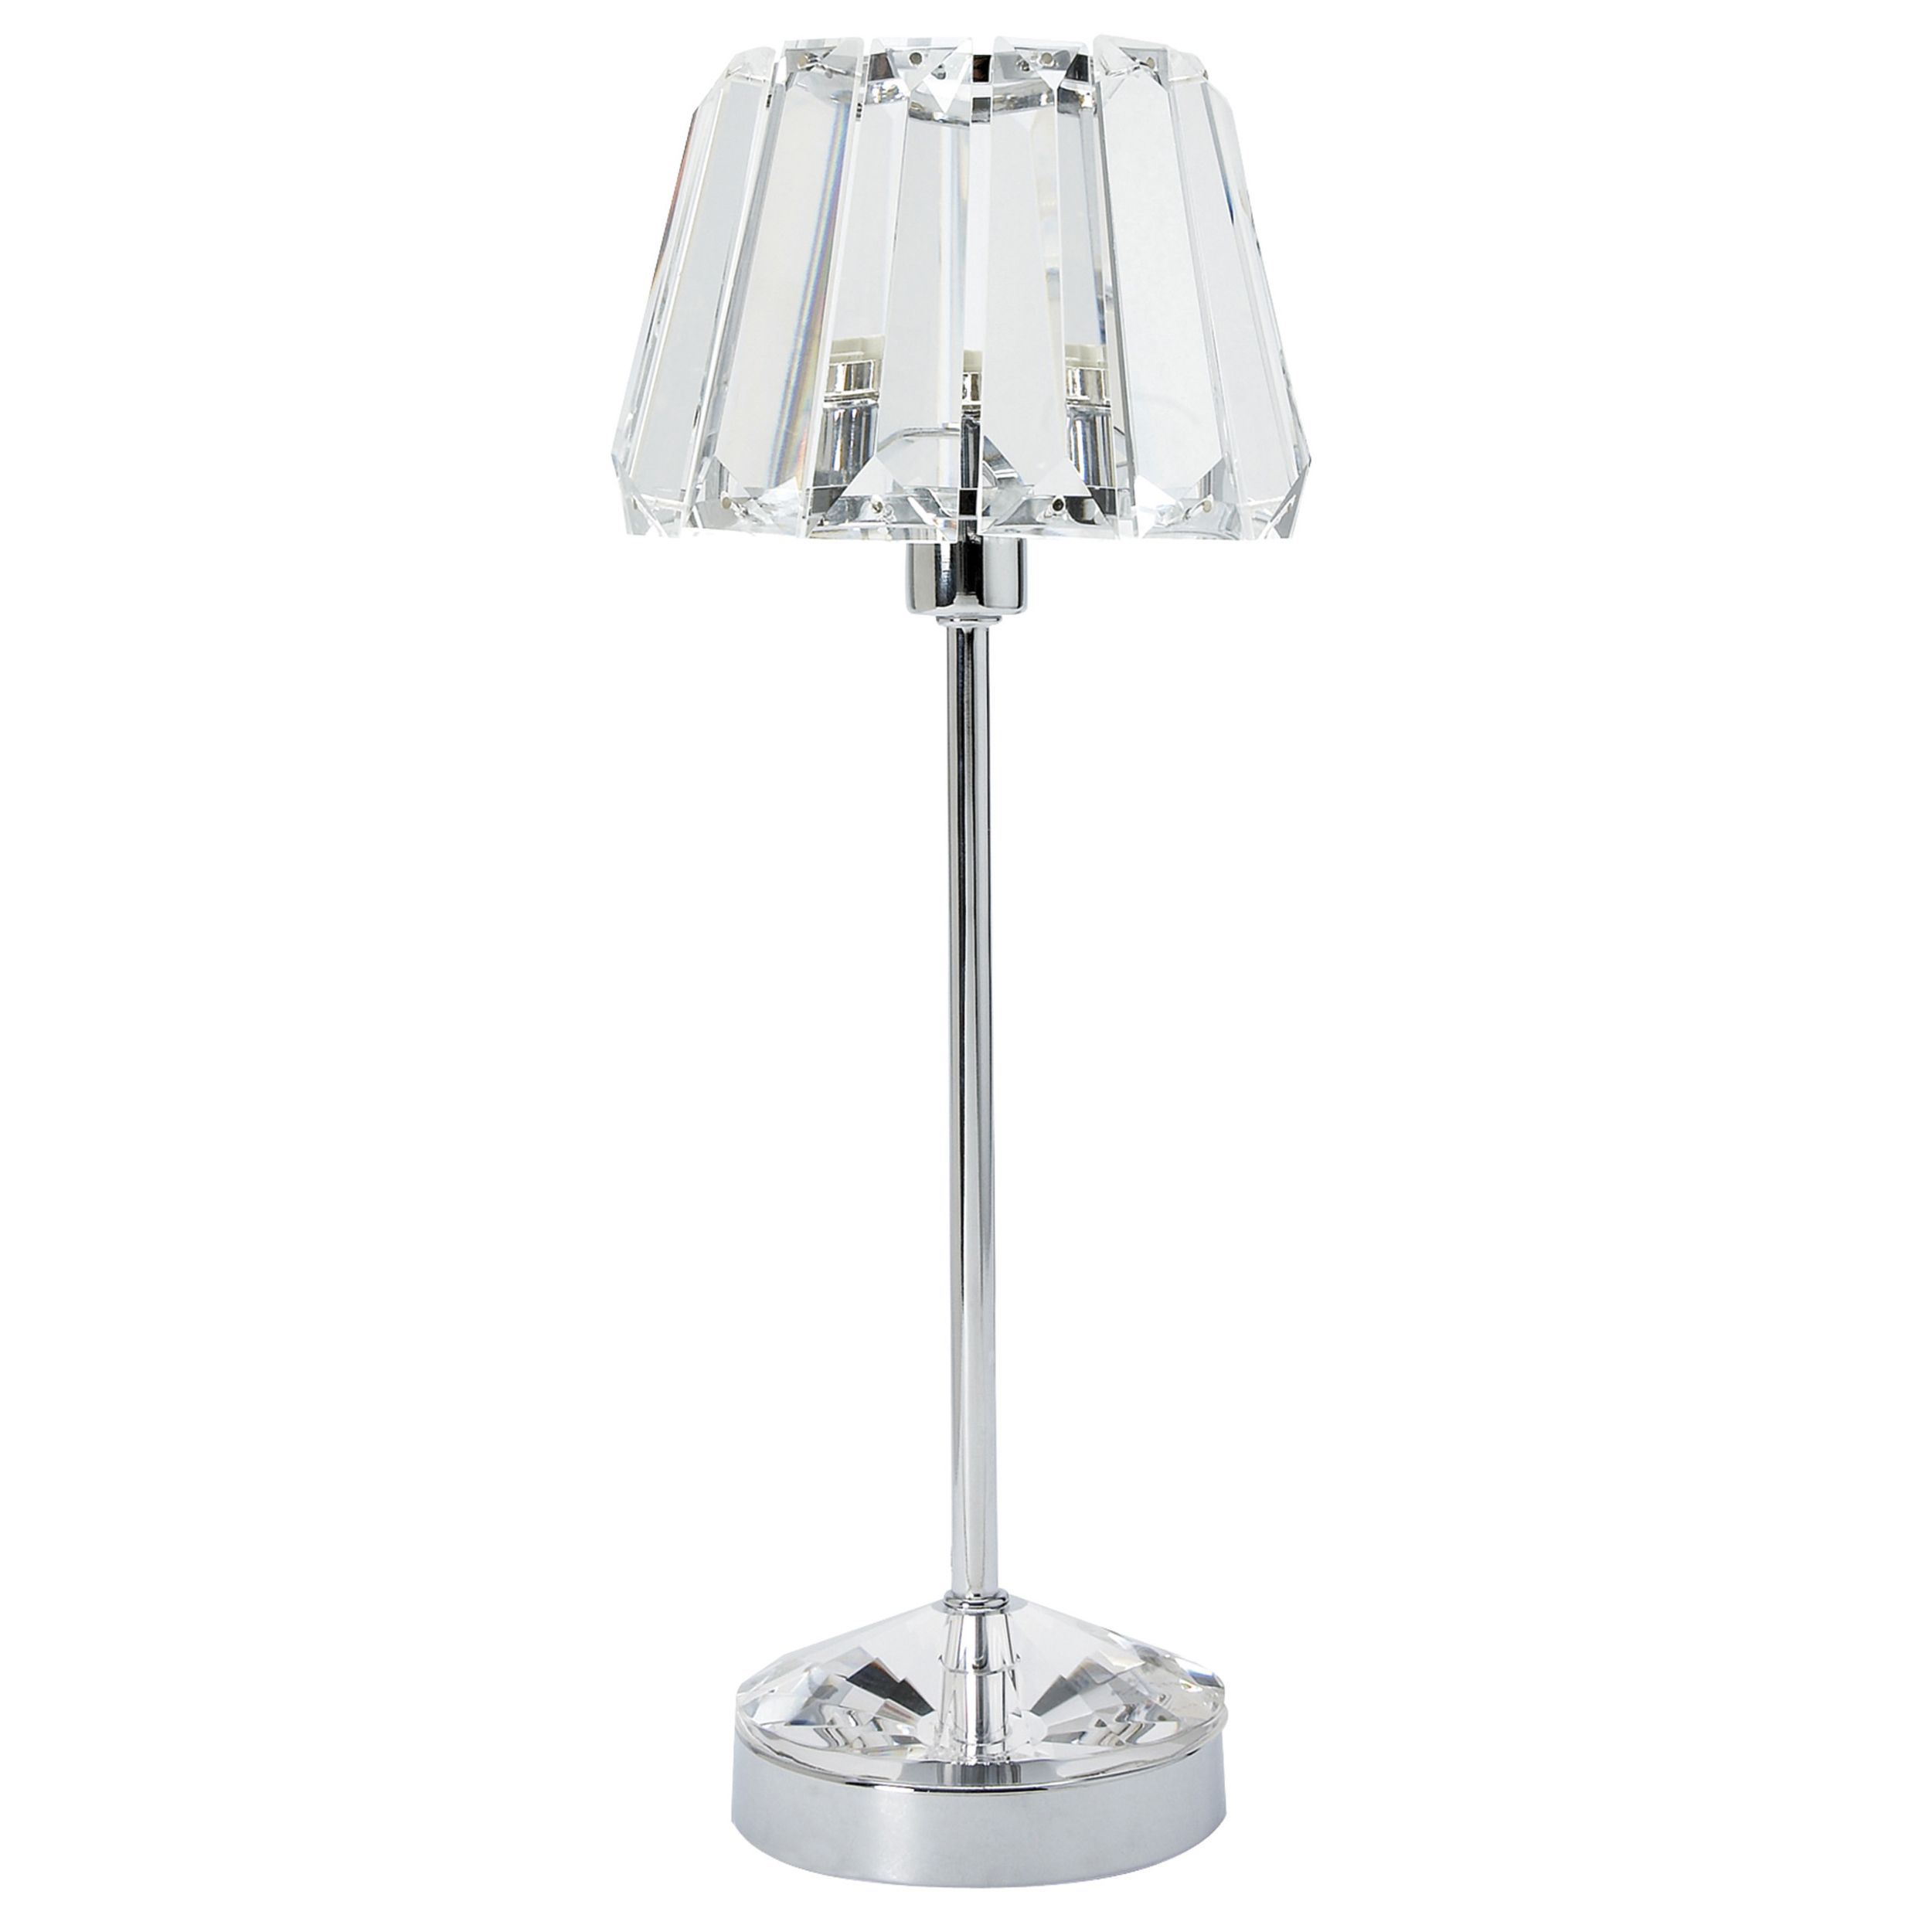 Table lamp vintage style - Laura Ashley Capri Chrome Lamp With Crystal Glass Shade